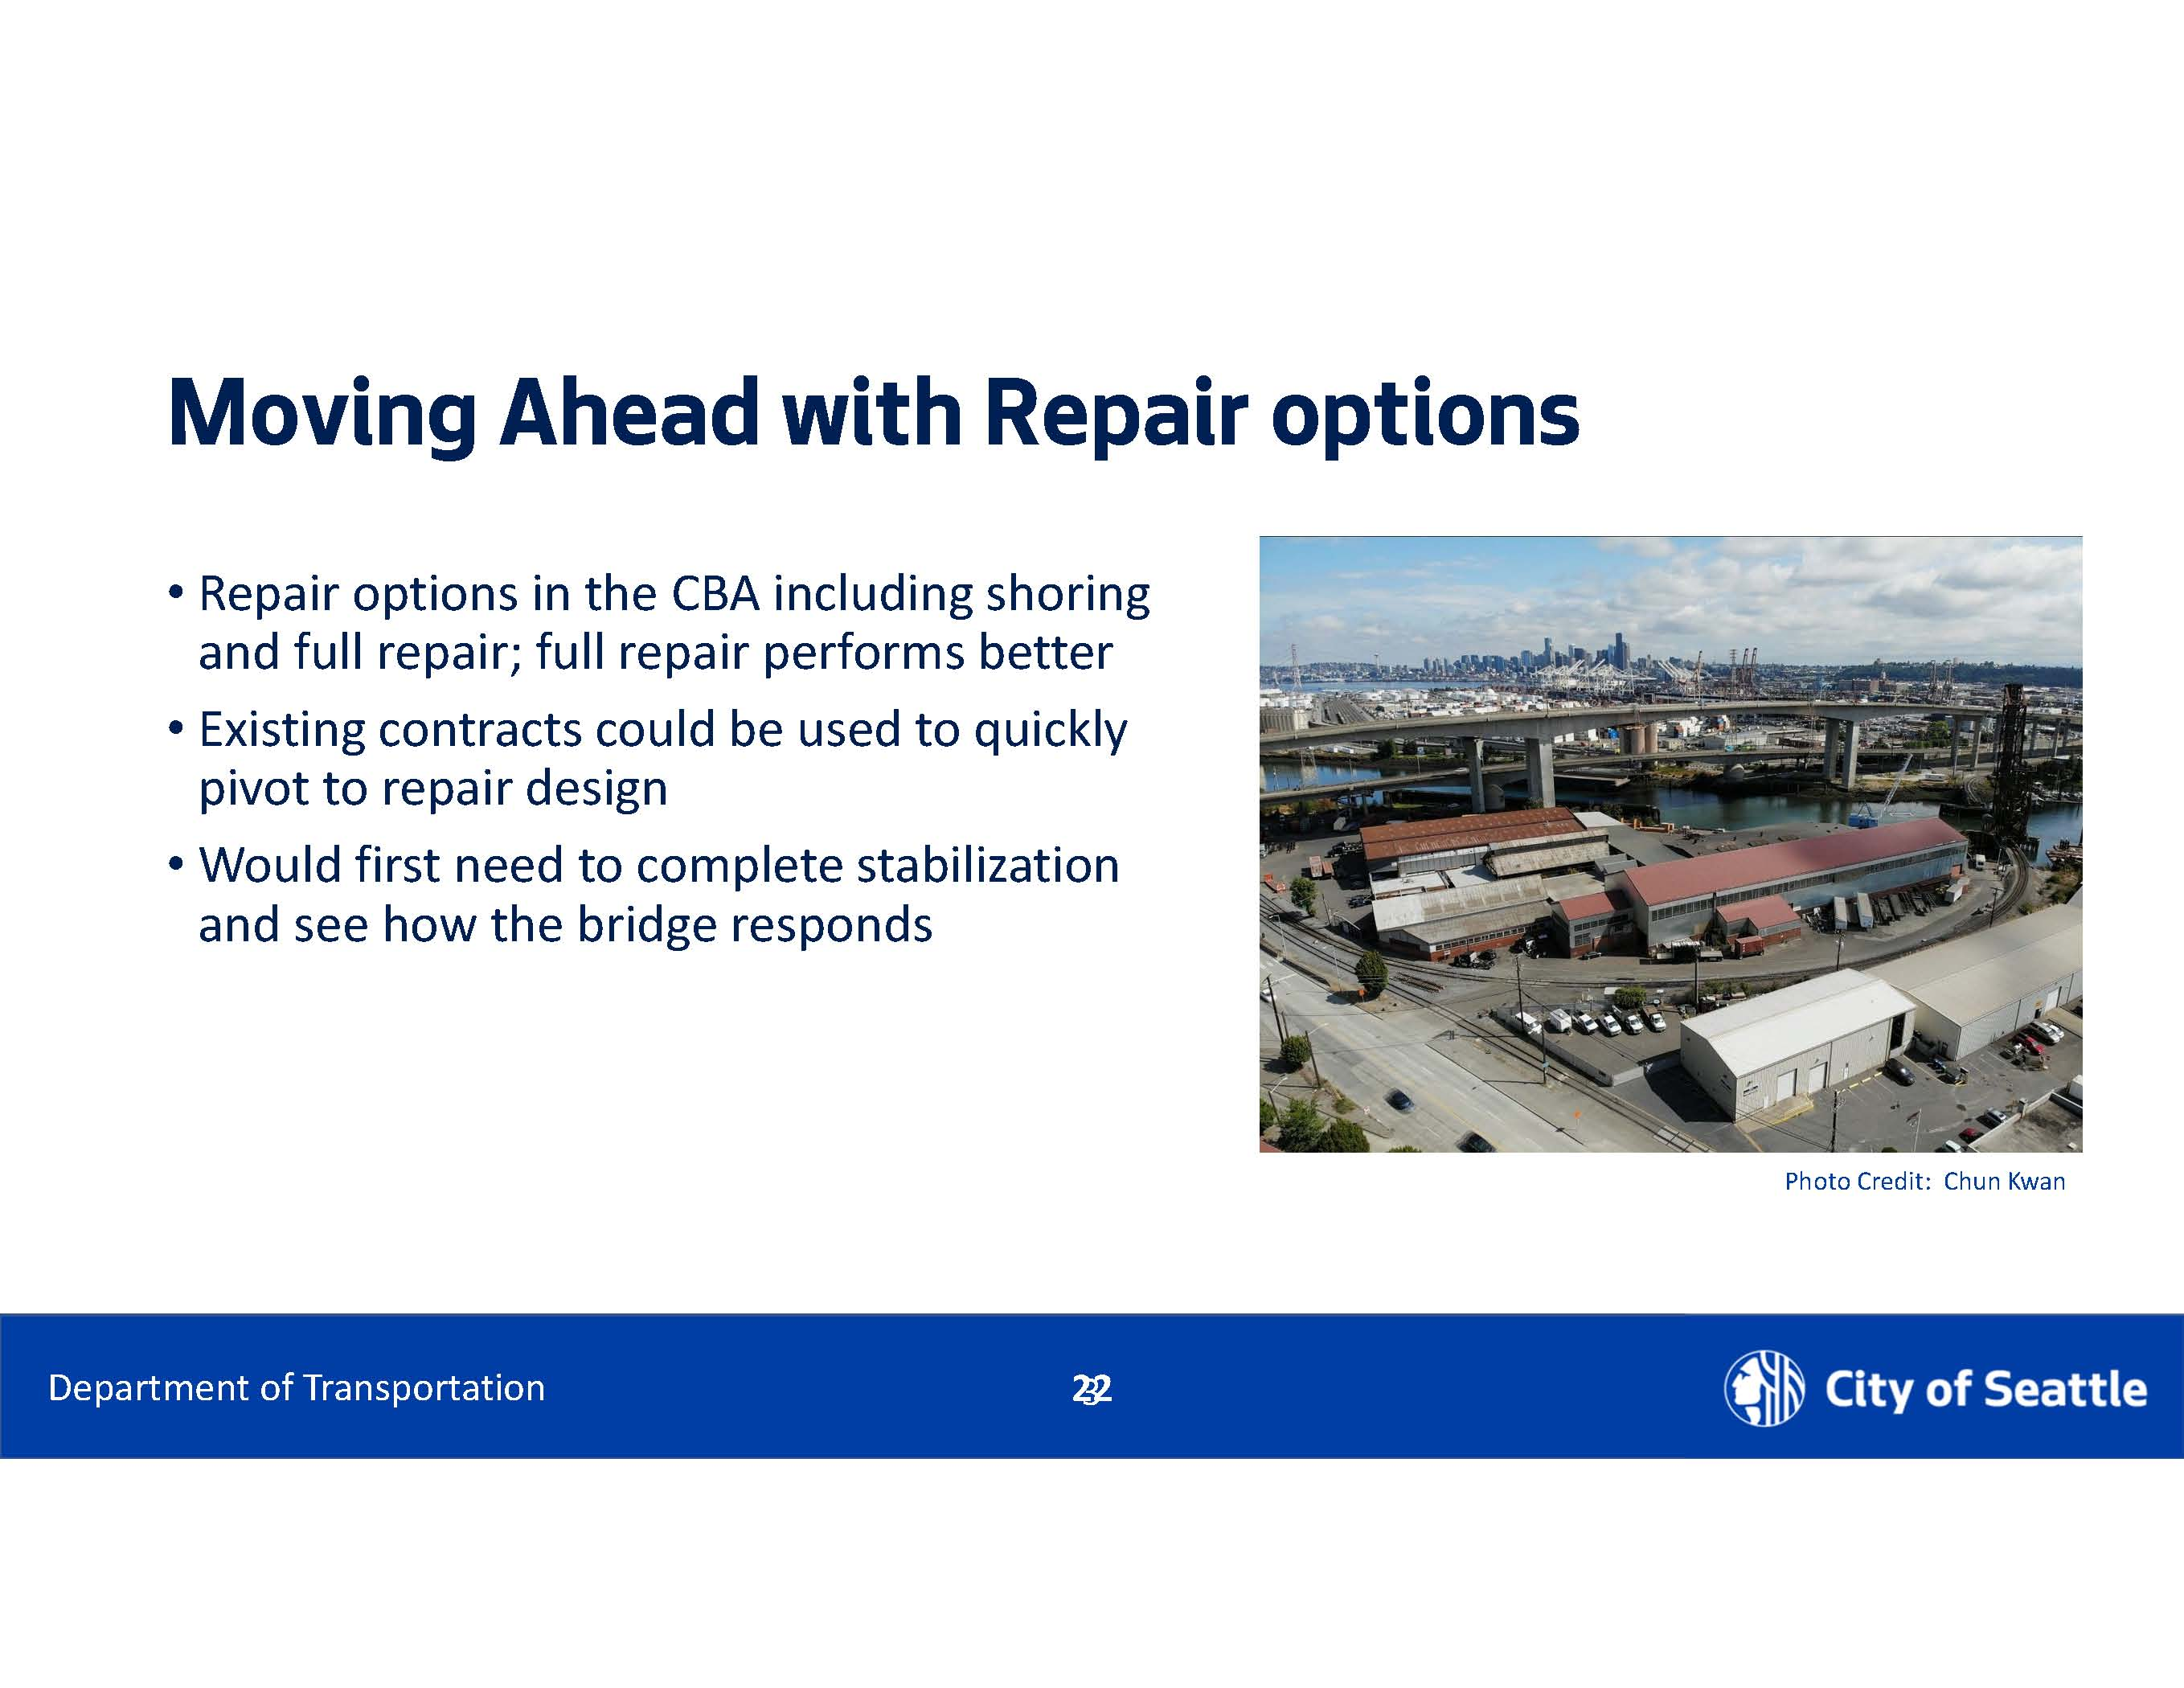 moving ahead with repair options